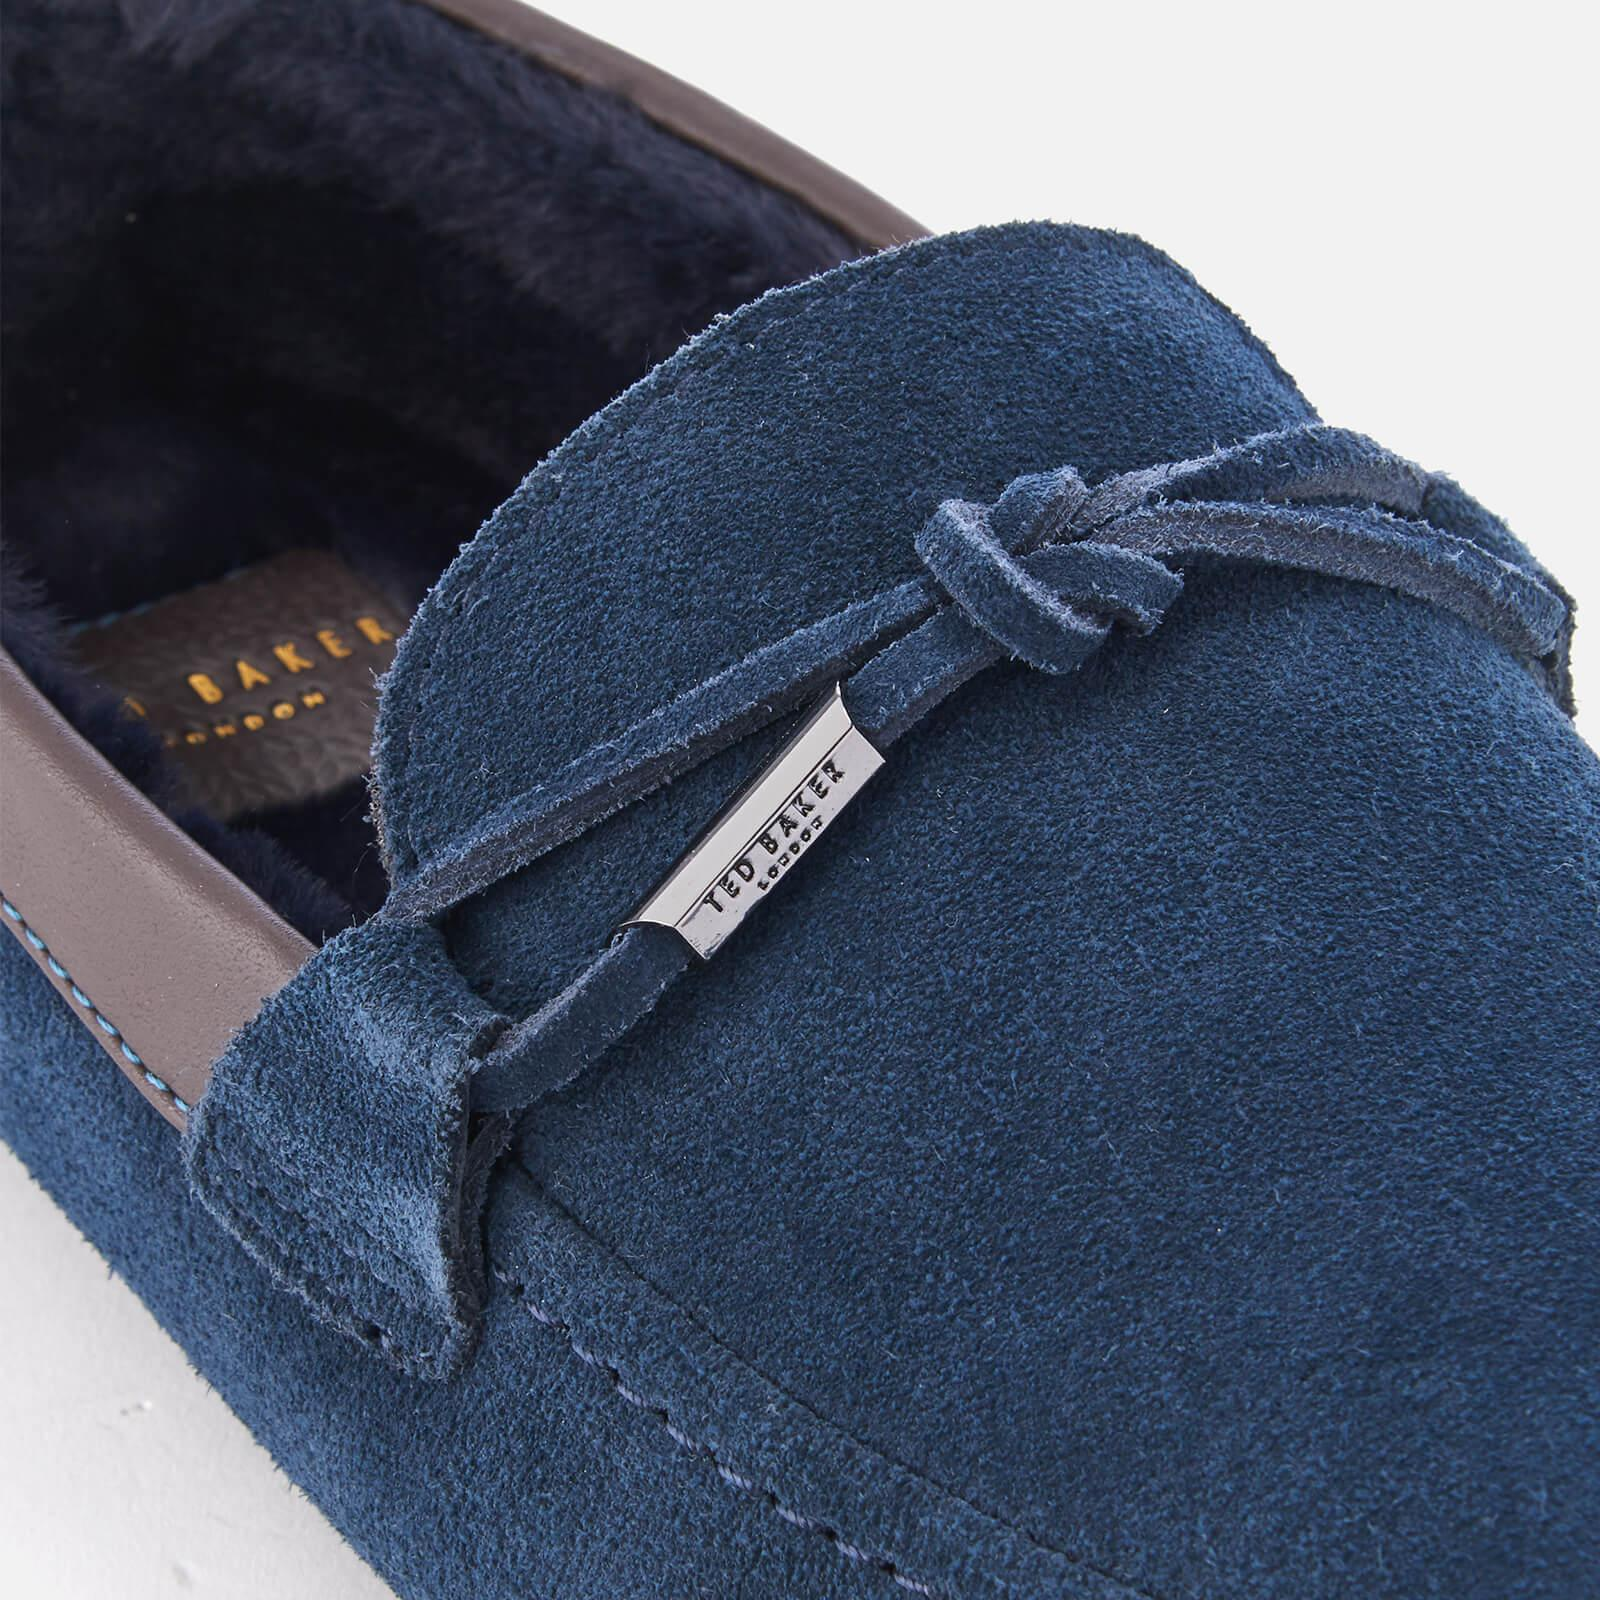 138c8d934 Lyst - Ted Baker Valcent Suede Moccasin Slippers in Blue for Men